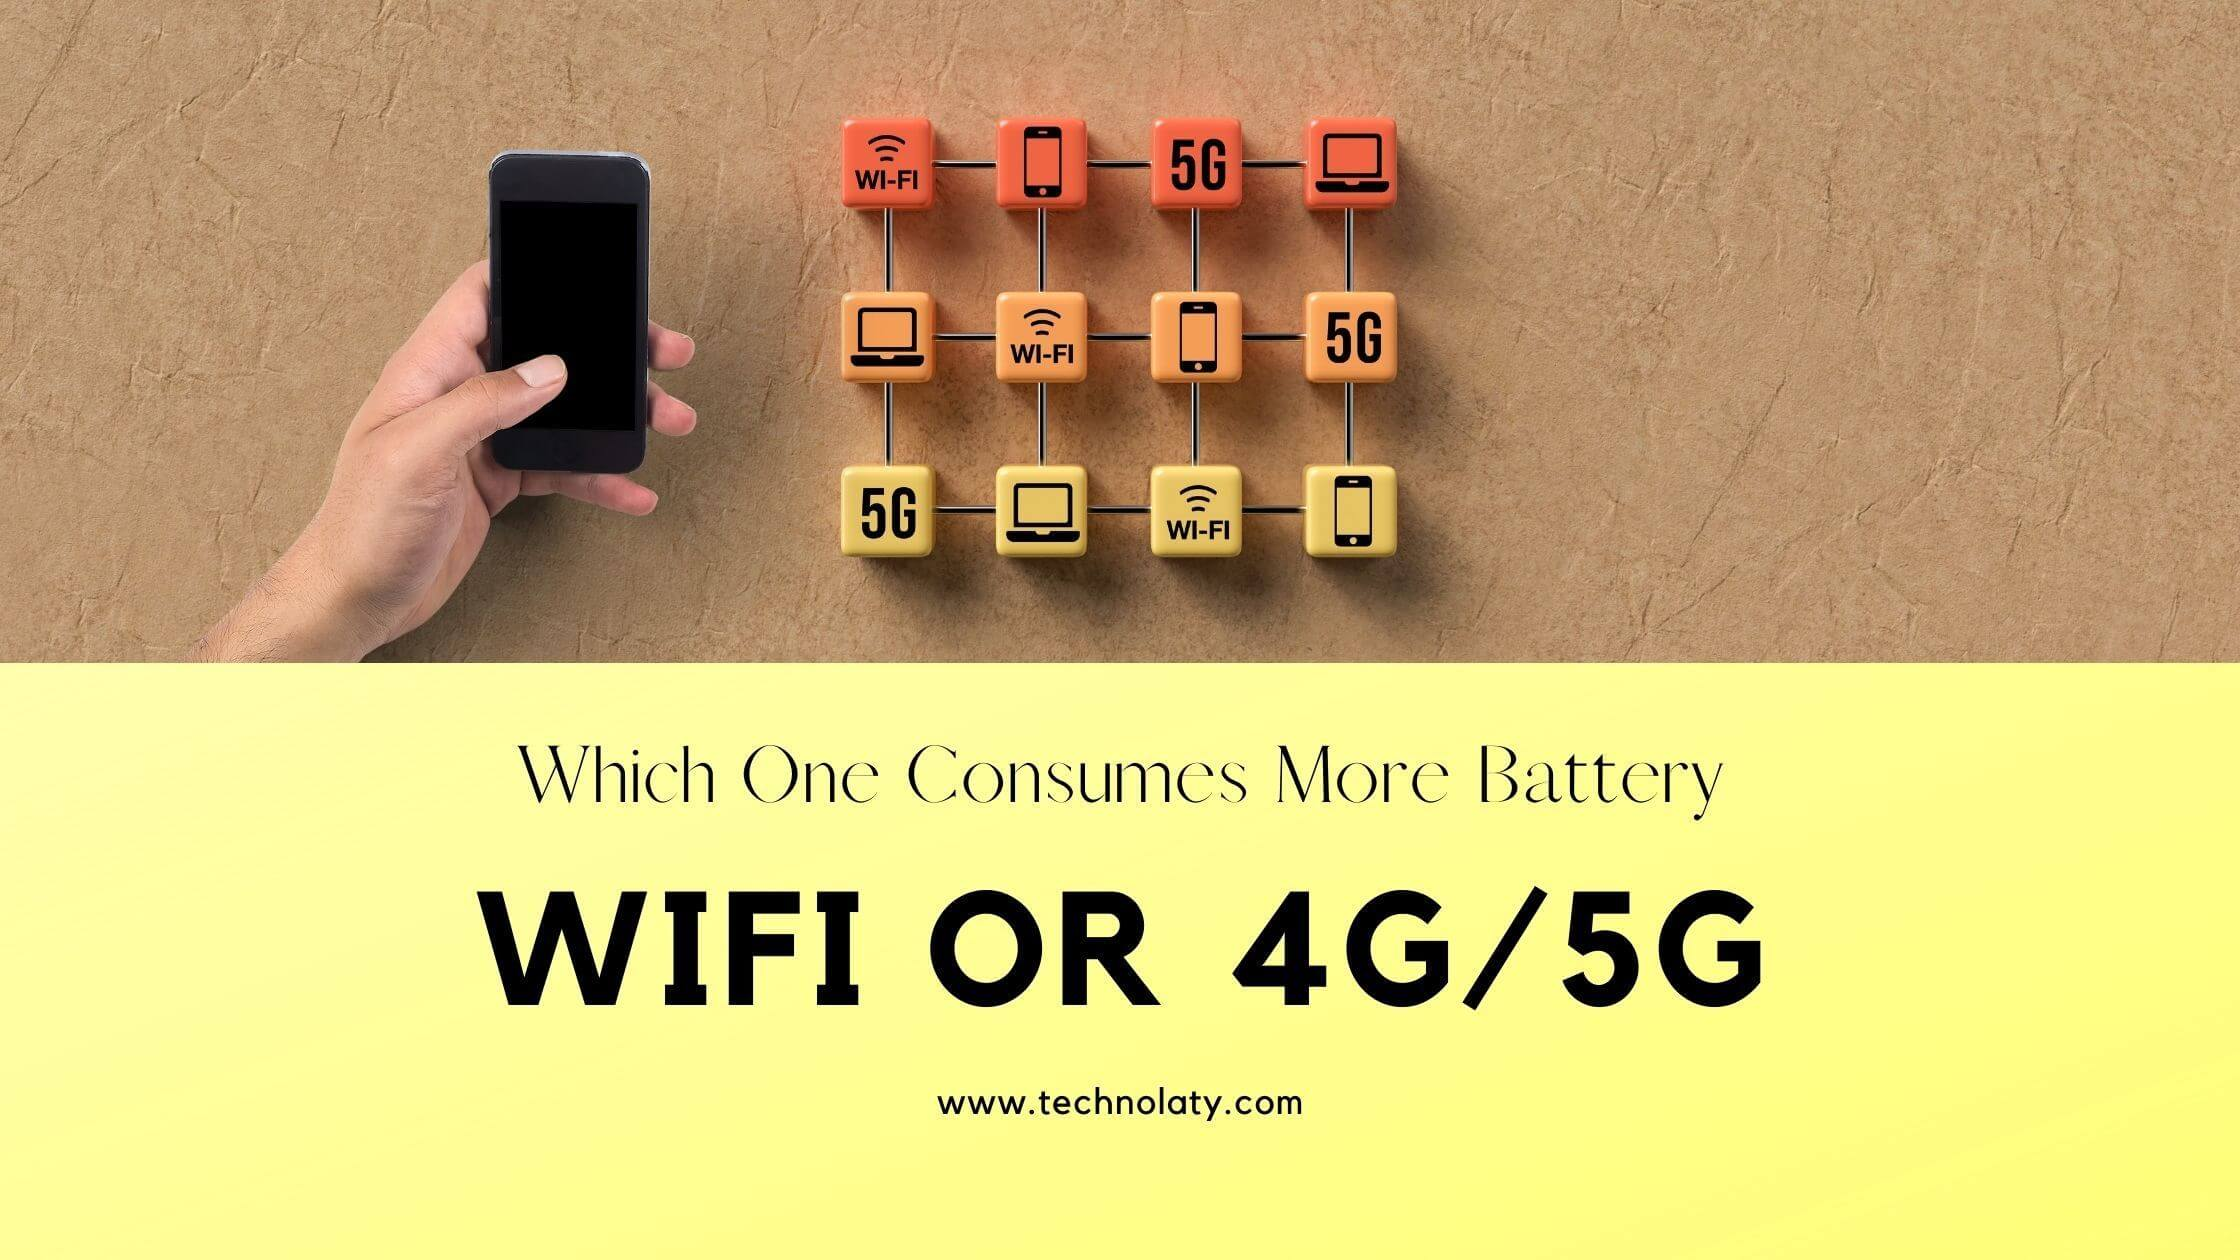 Which consumes battery more wifi, 4g or 5g